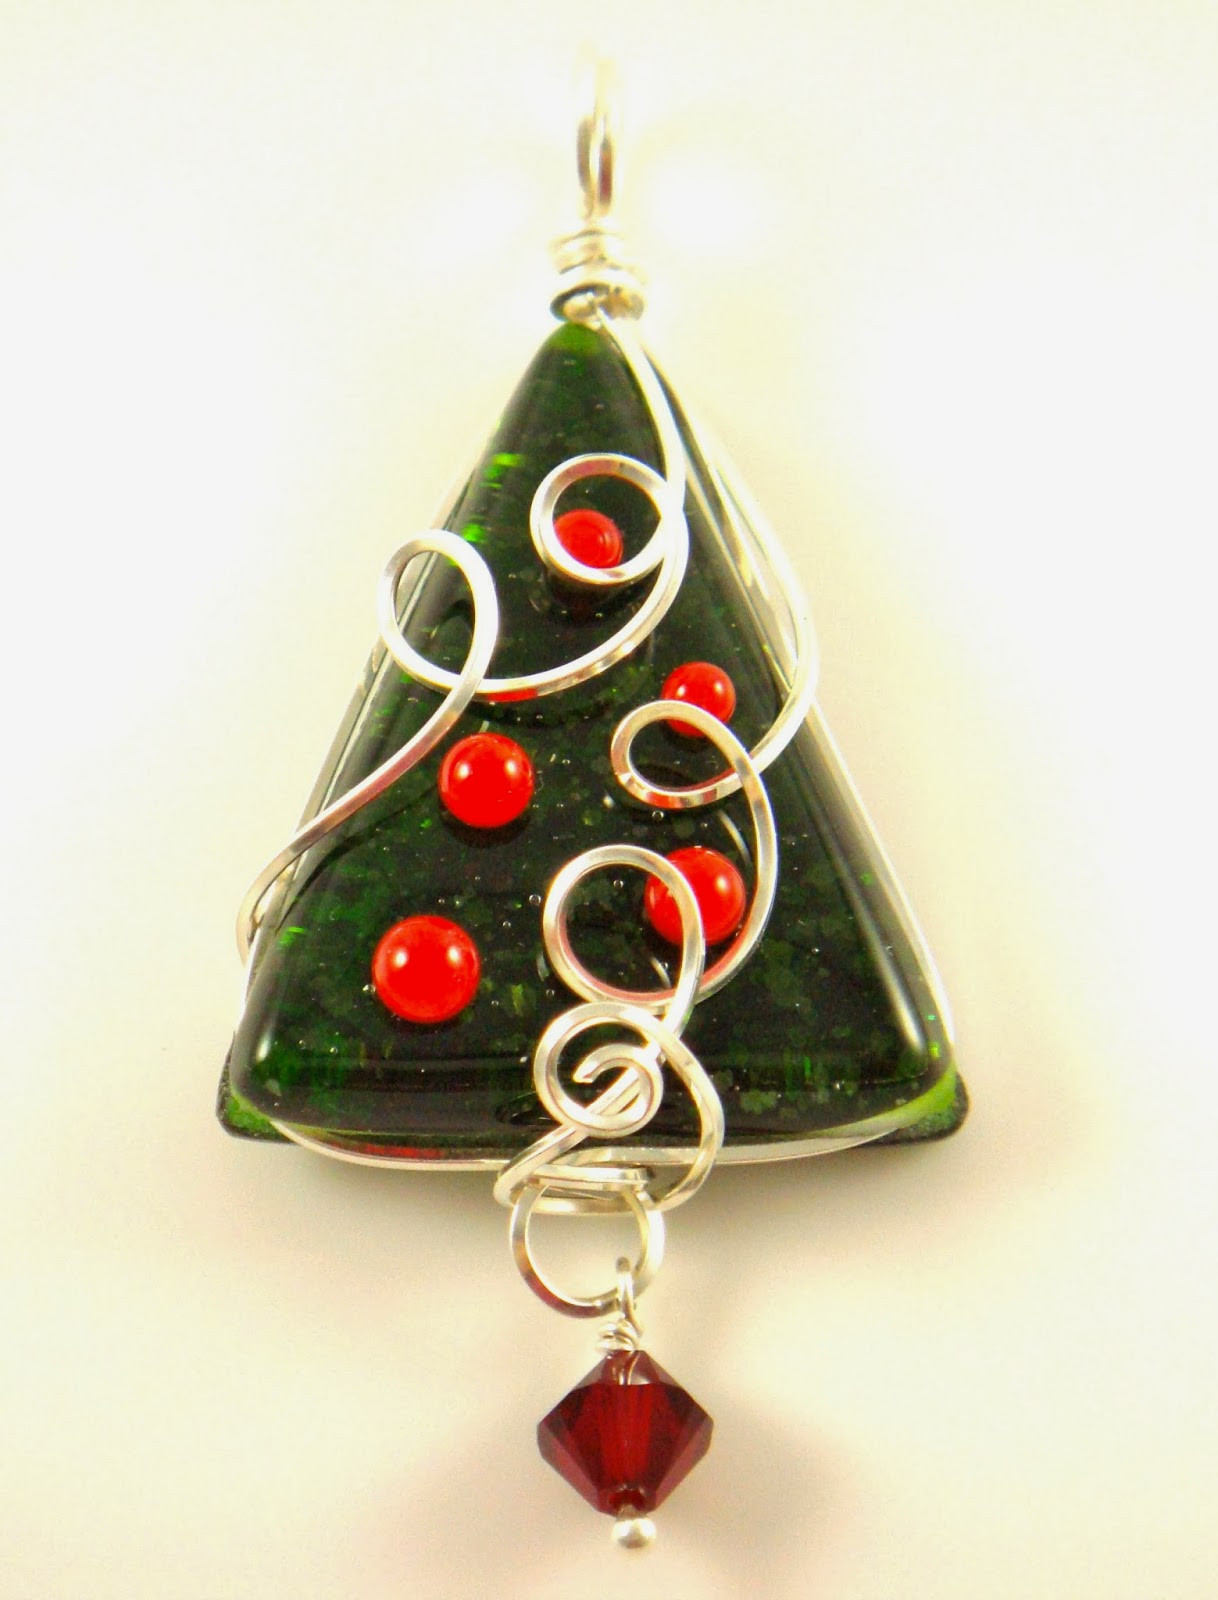 merry christmas new fused glass